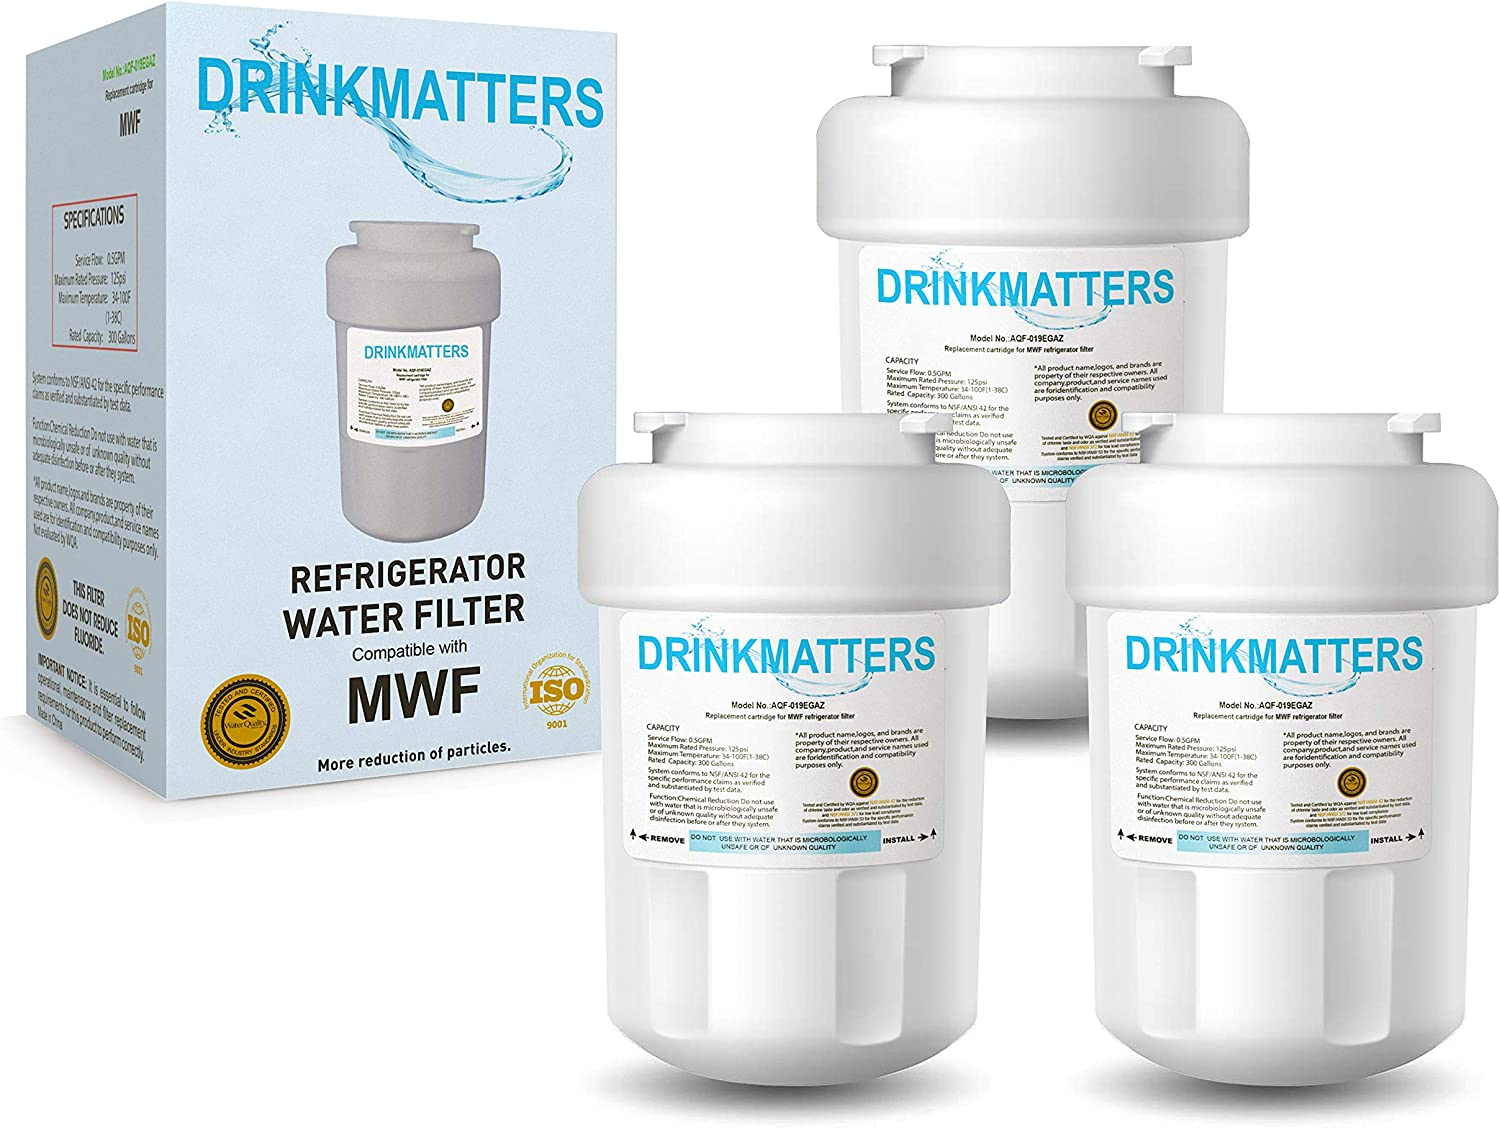 DRINKMATTERS Compatible Refrigerator Water Filter Replacement for GE MWF SmartWater MWFINT MWFP MWFA GWF HDX FMG-1 GSE25GSHECSS WFC1201 RWF1060 and Kenmore 9991 - NSF 53&42&372 Certified - PACK of 3